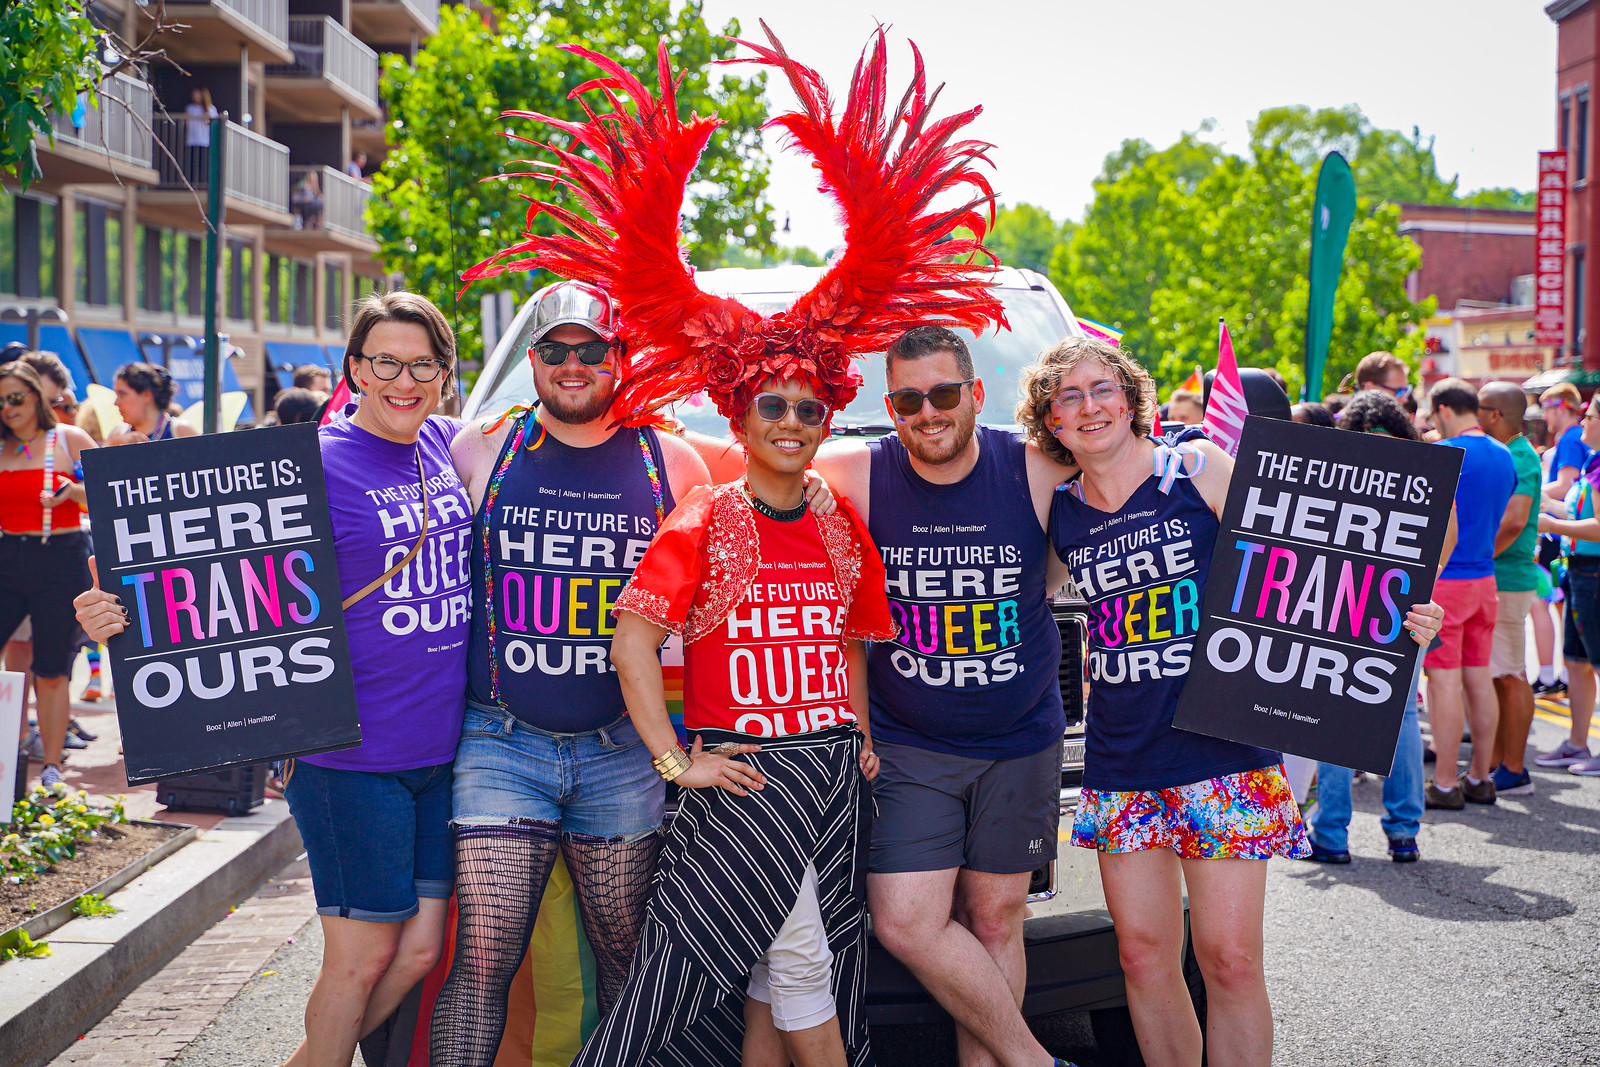 Photos from the 2019 Capital Pride Parade, Washington, DC USA - The future is (authentically) ours